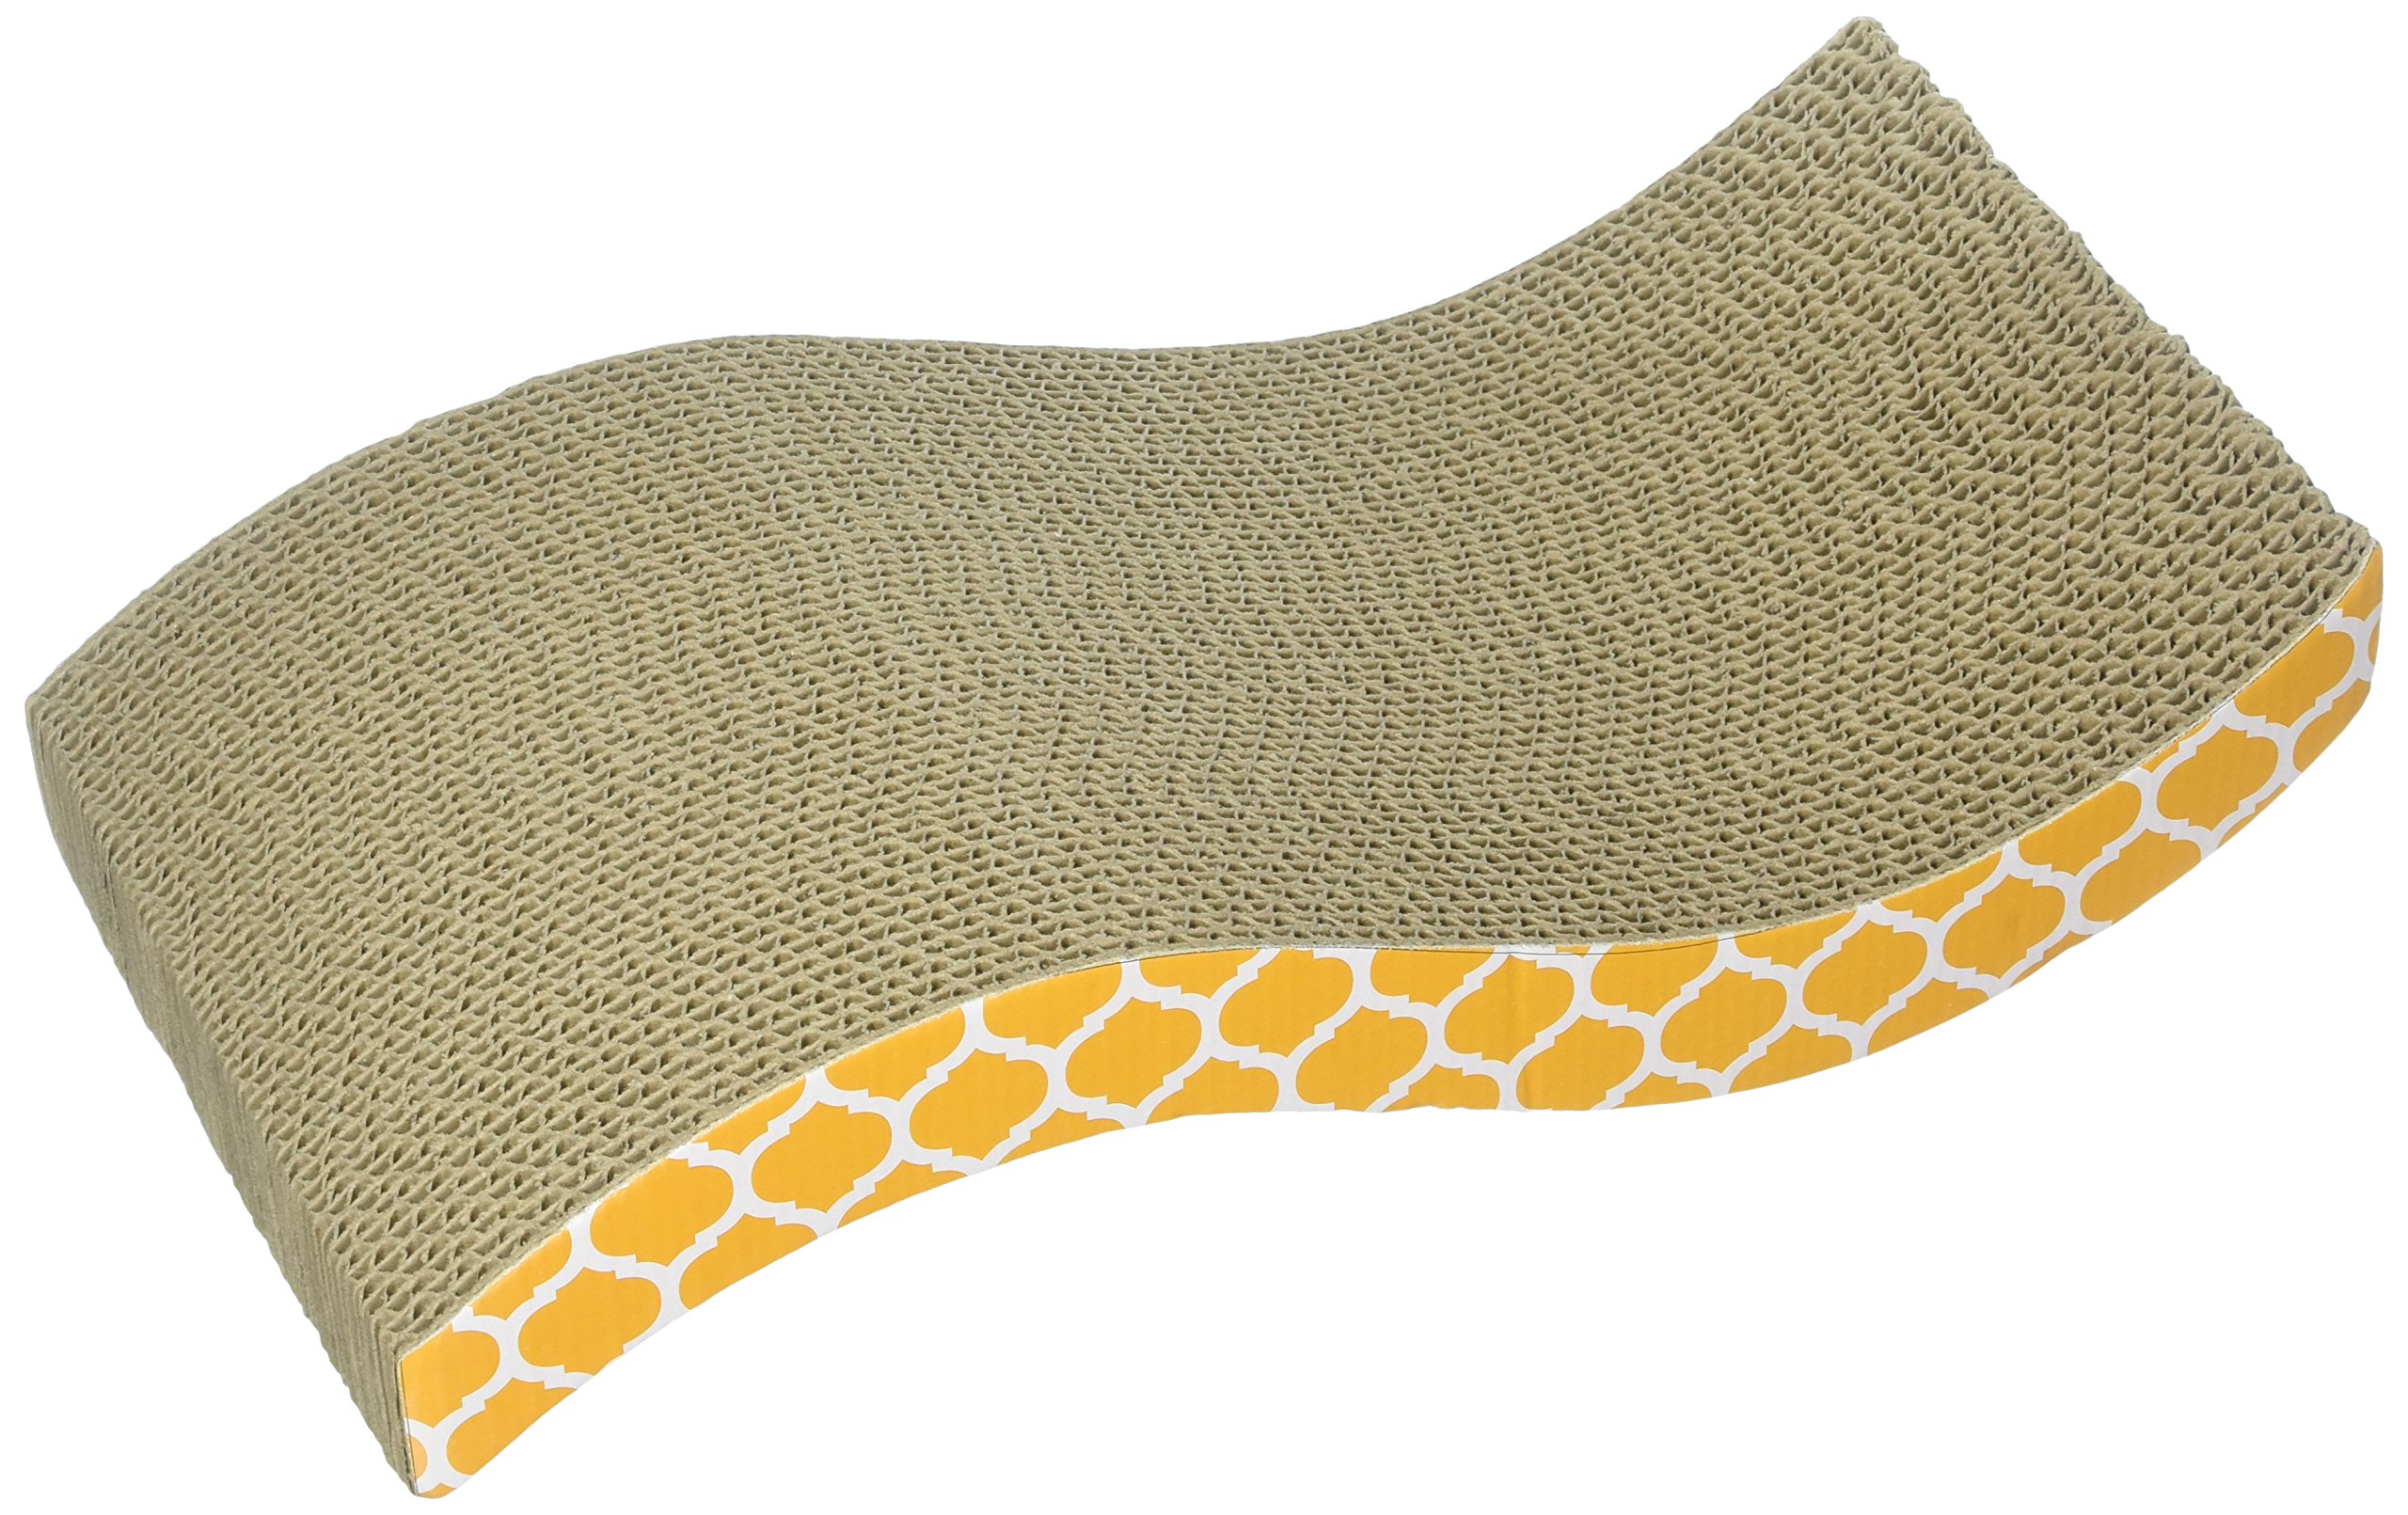 OurPets The Wave Curved Catnip Cat Scratcher